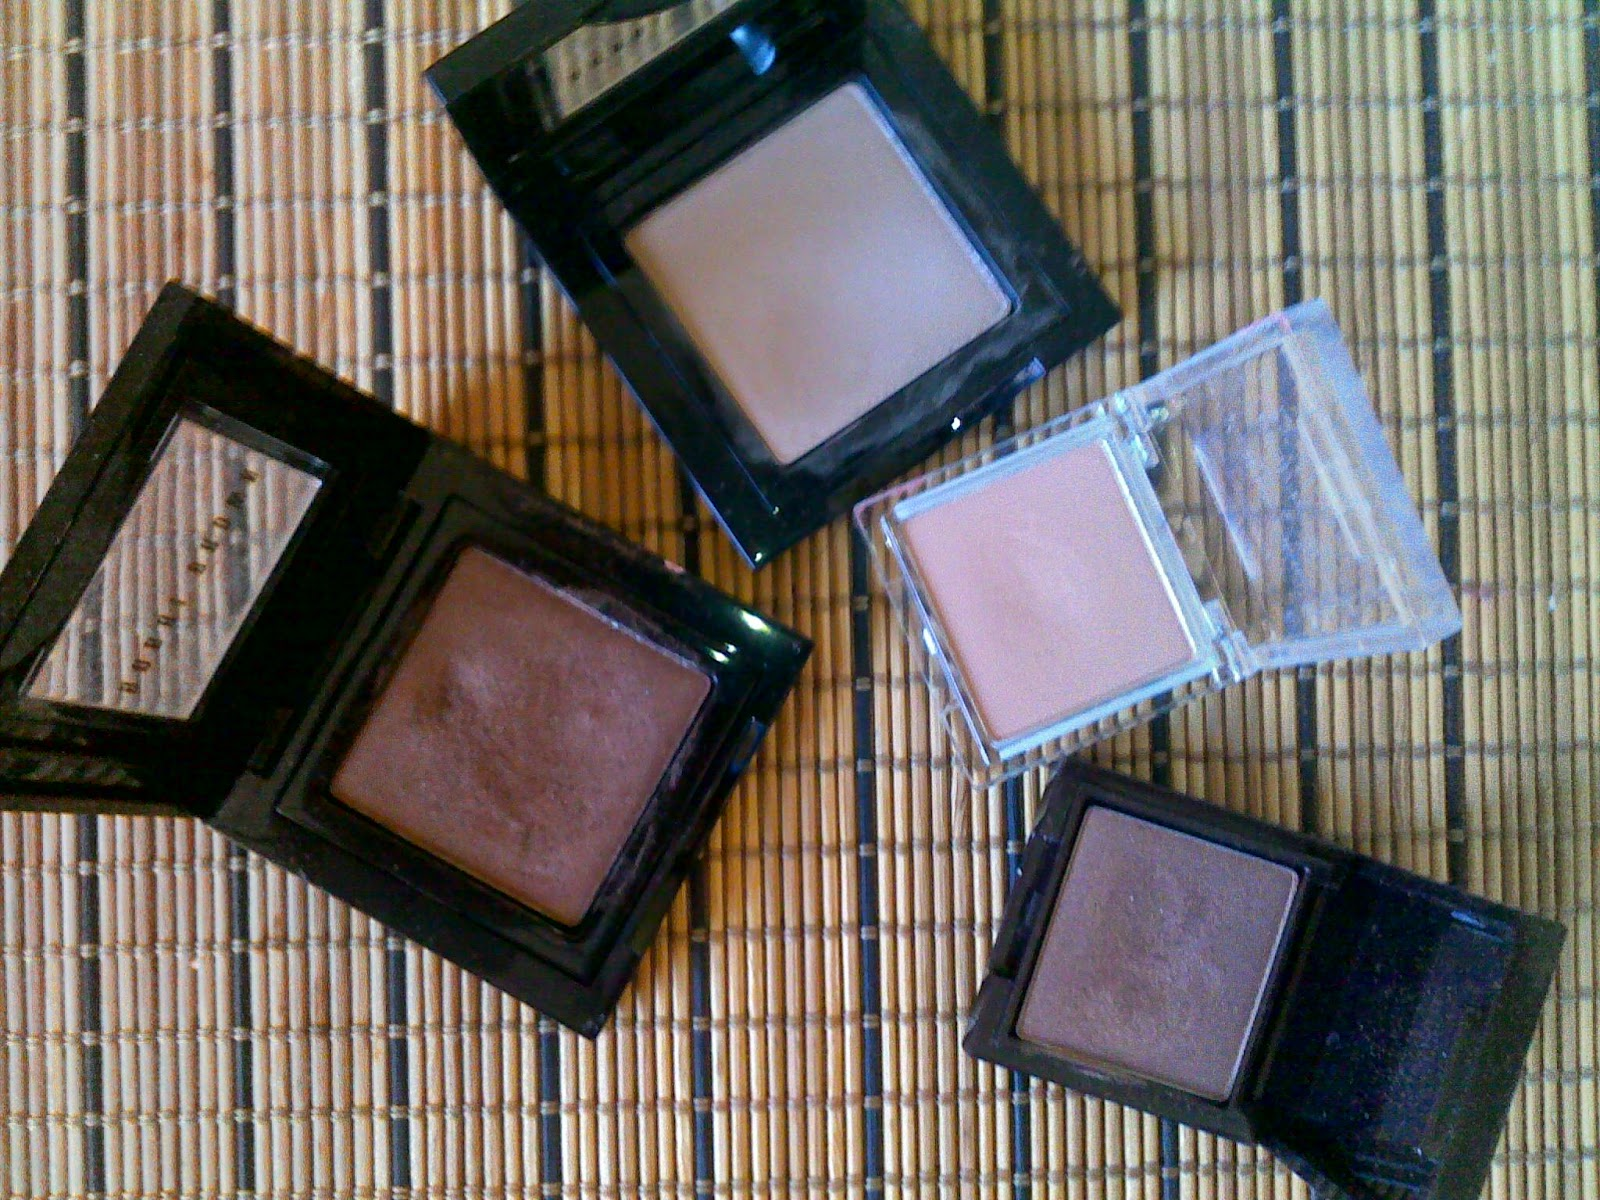 Nude single eyeshadows from Bobbi Brown, Erre Due and Korres